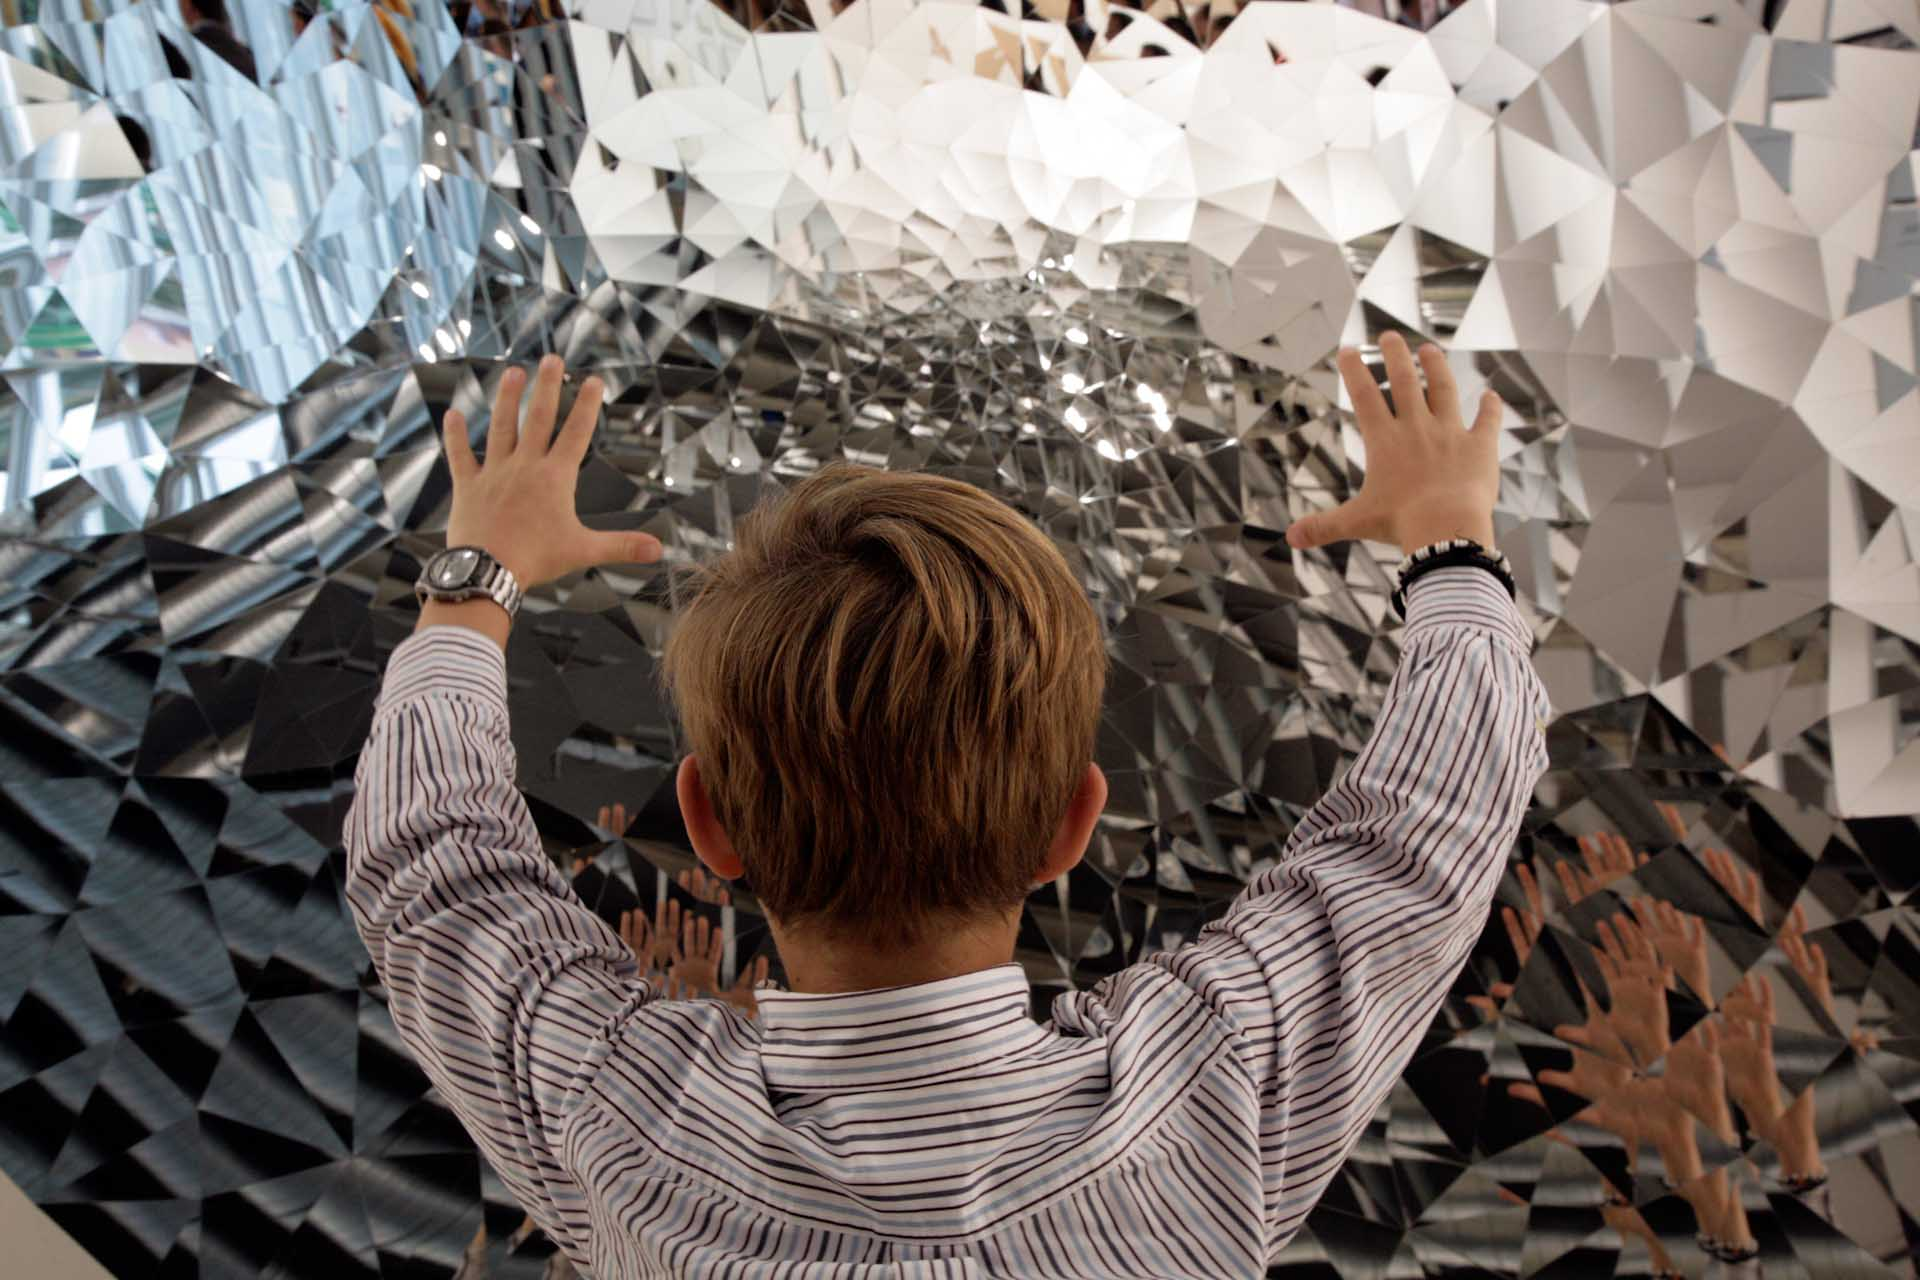 Art 40, 2009: Boy looks at his 100 faces in a kinetic object by Anish Kapoor